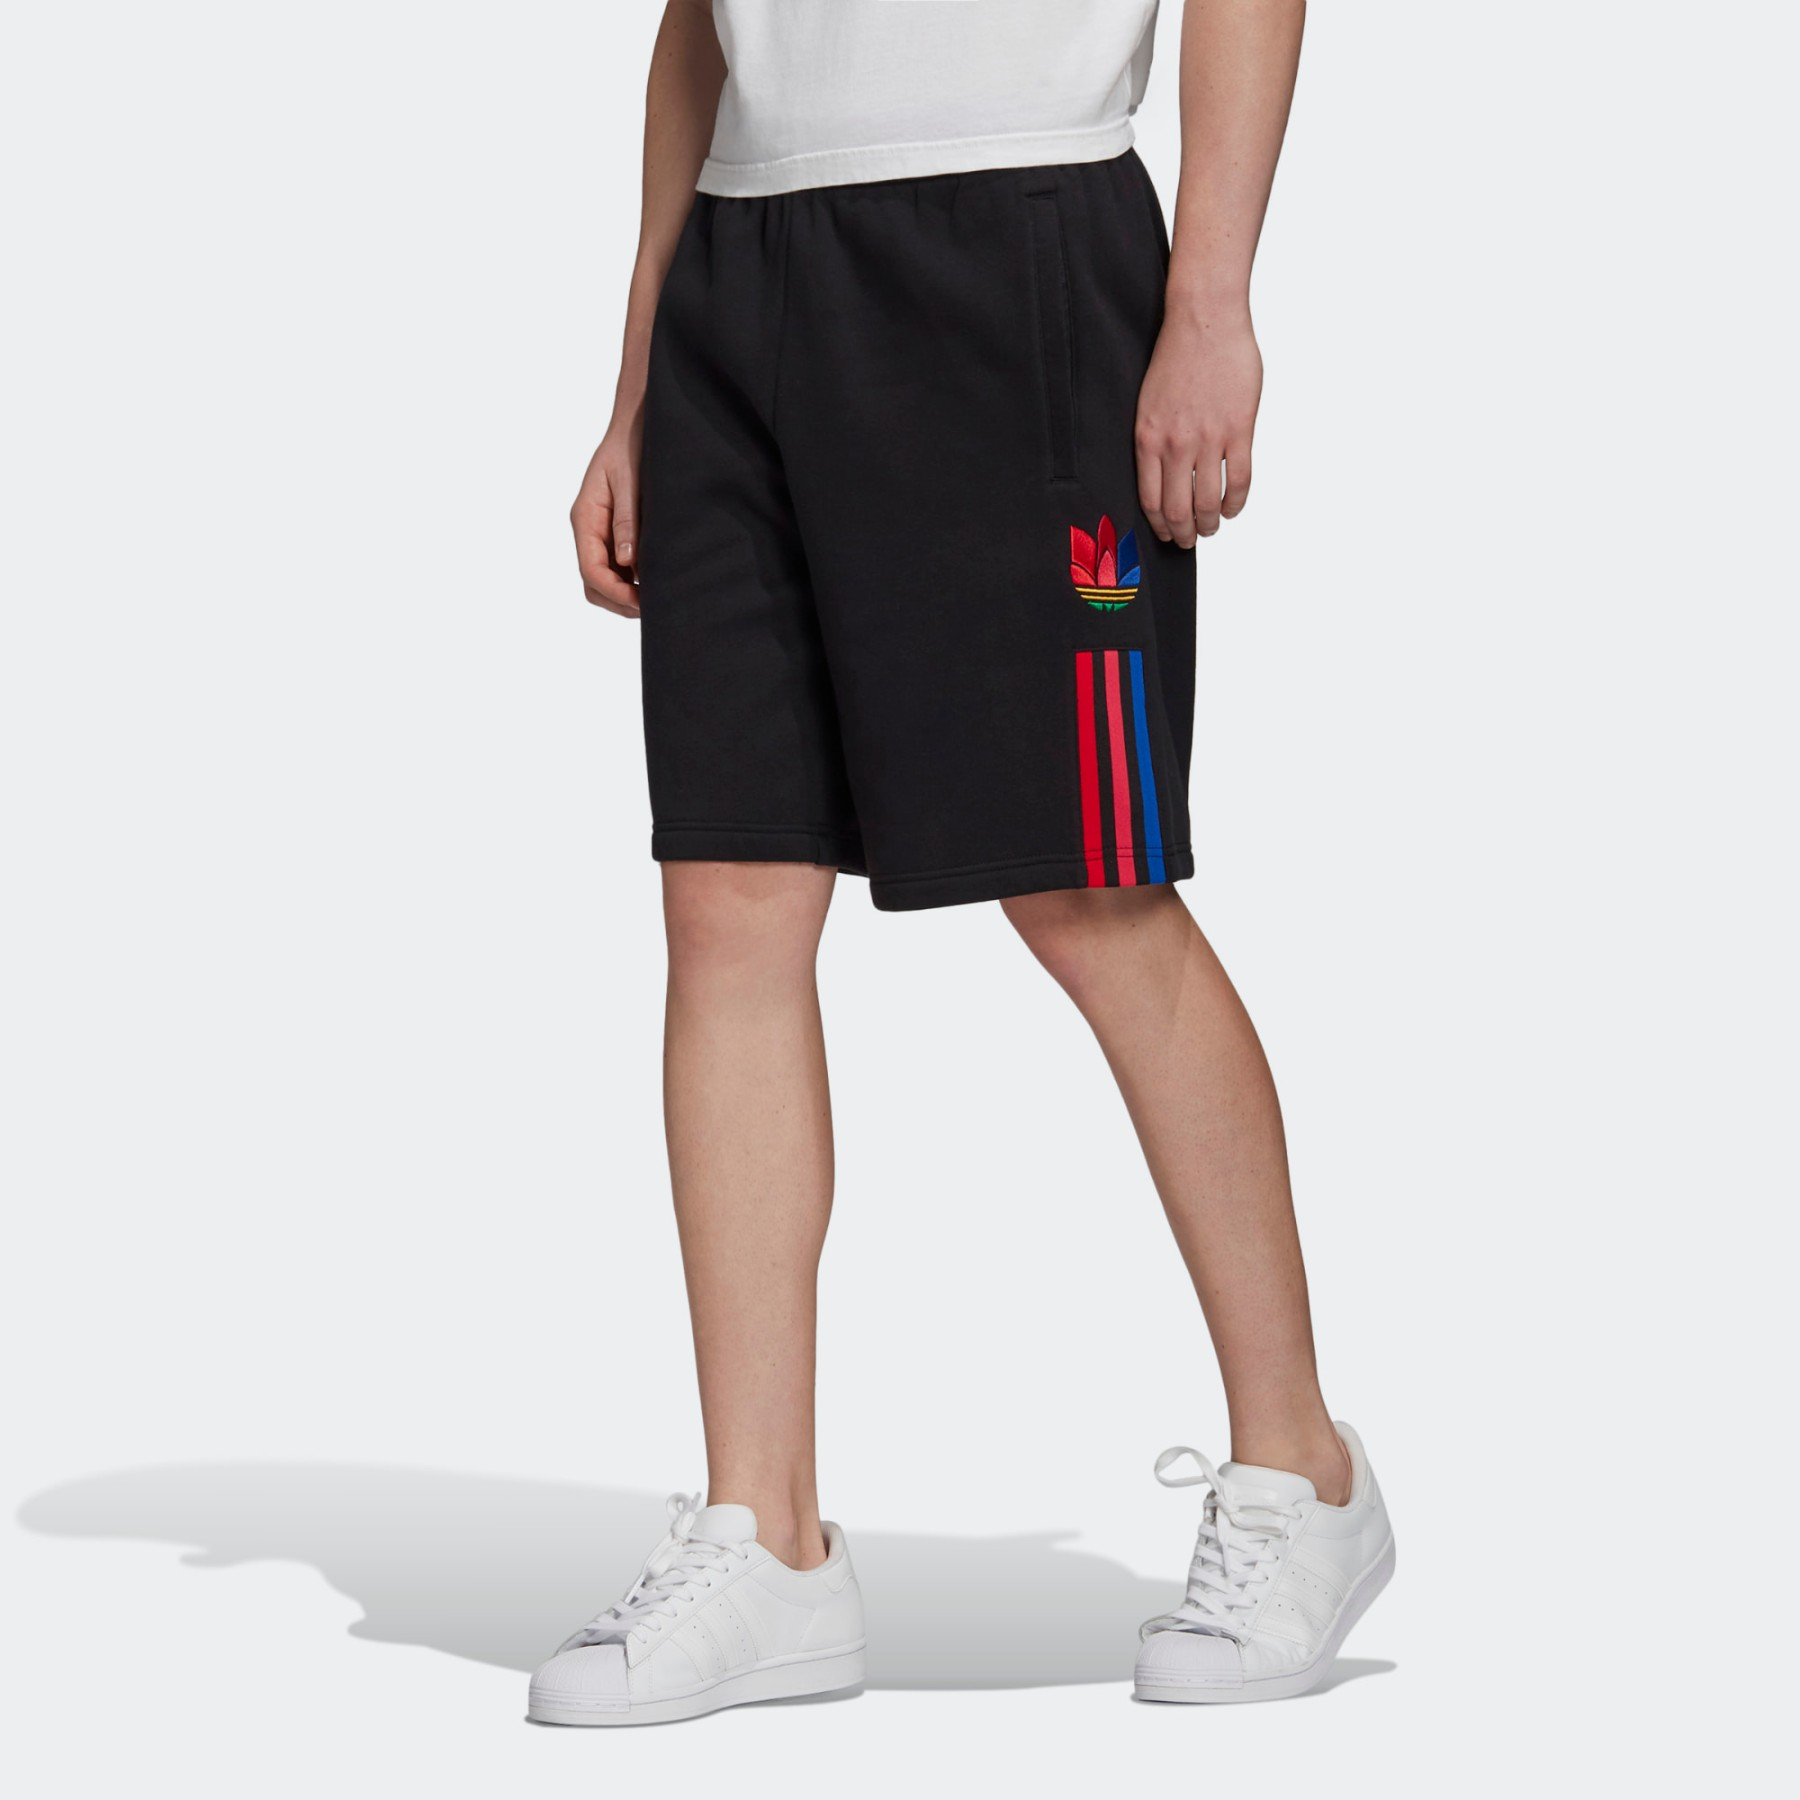 adidas Sweat Shorts 3D TREFOIL 3-STRIPES neri e rossi